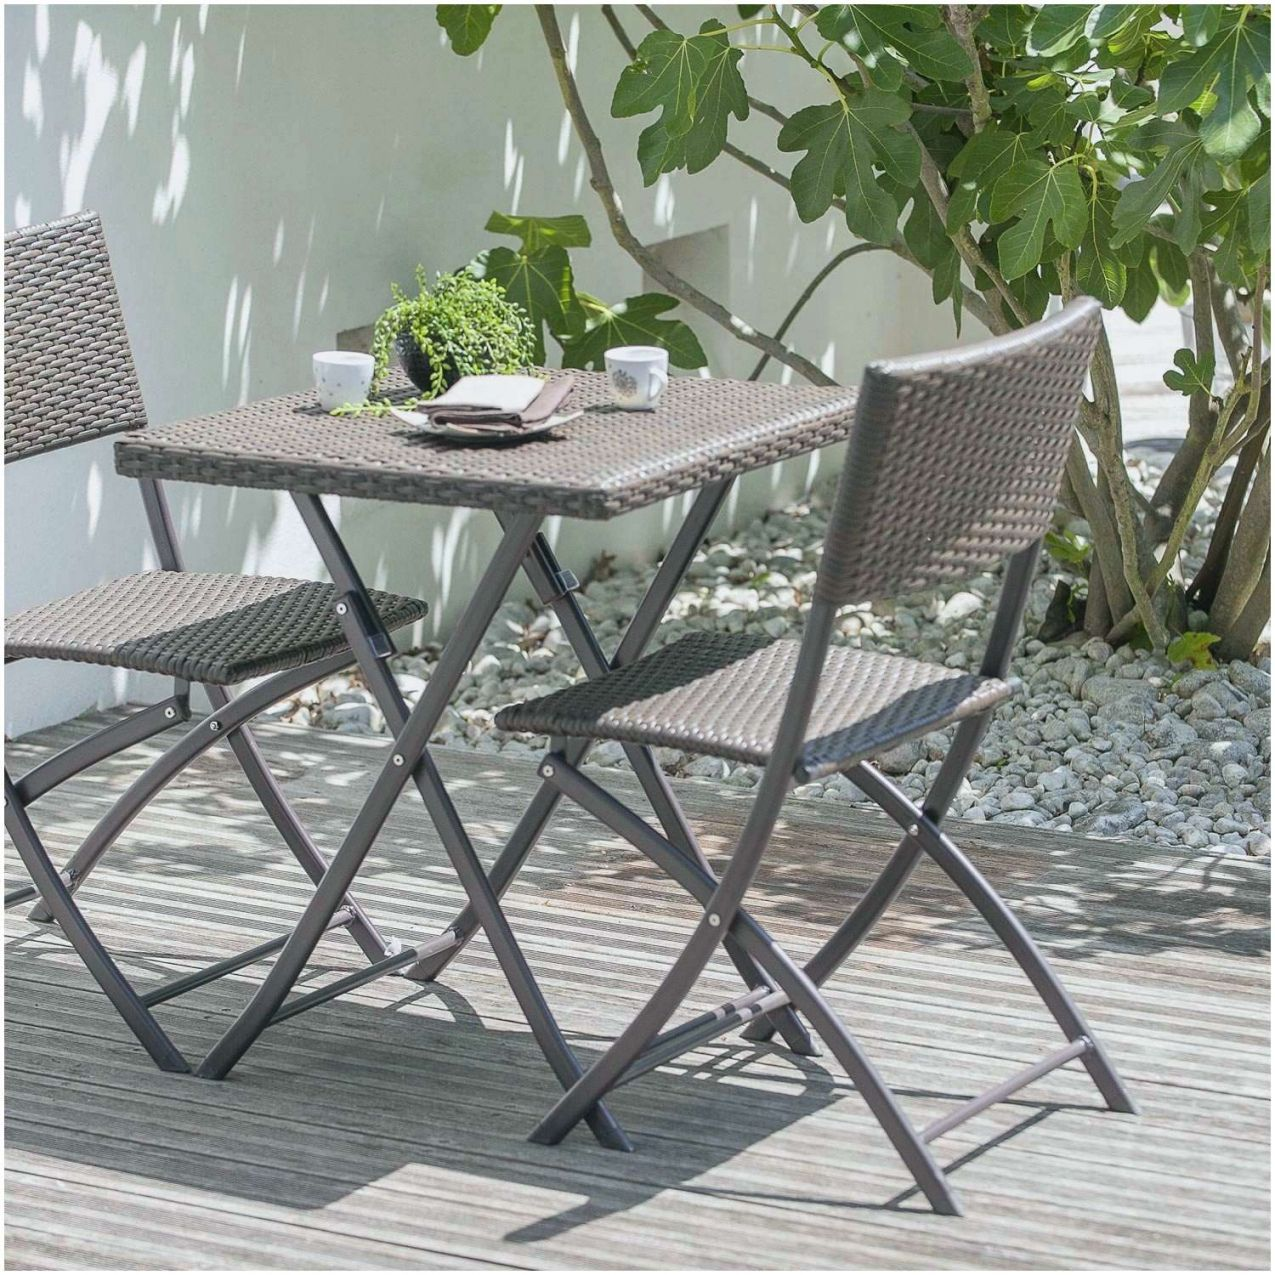 201 Caisse Plastique Leroy Merlin 2020 Check More At Https Www Unionjacktrooper Com 50 Caisse Plasti Outdoor Furniture Outdoor Tables Outdoor Furniture Sets